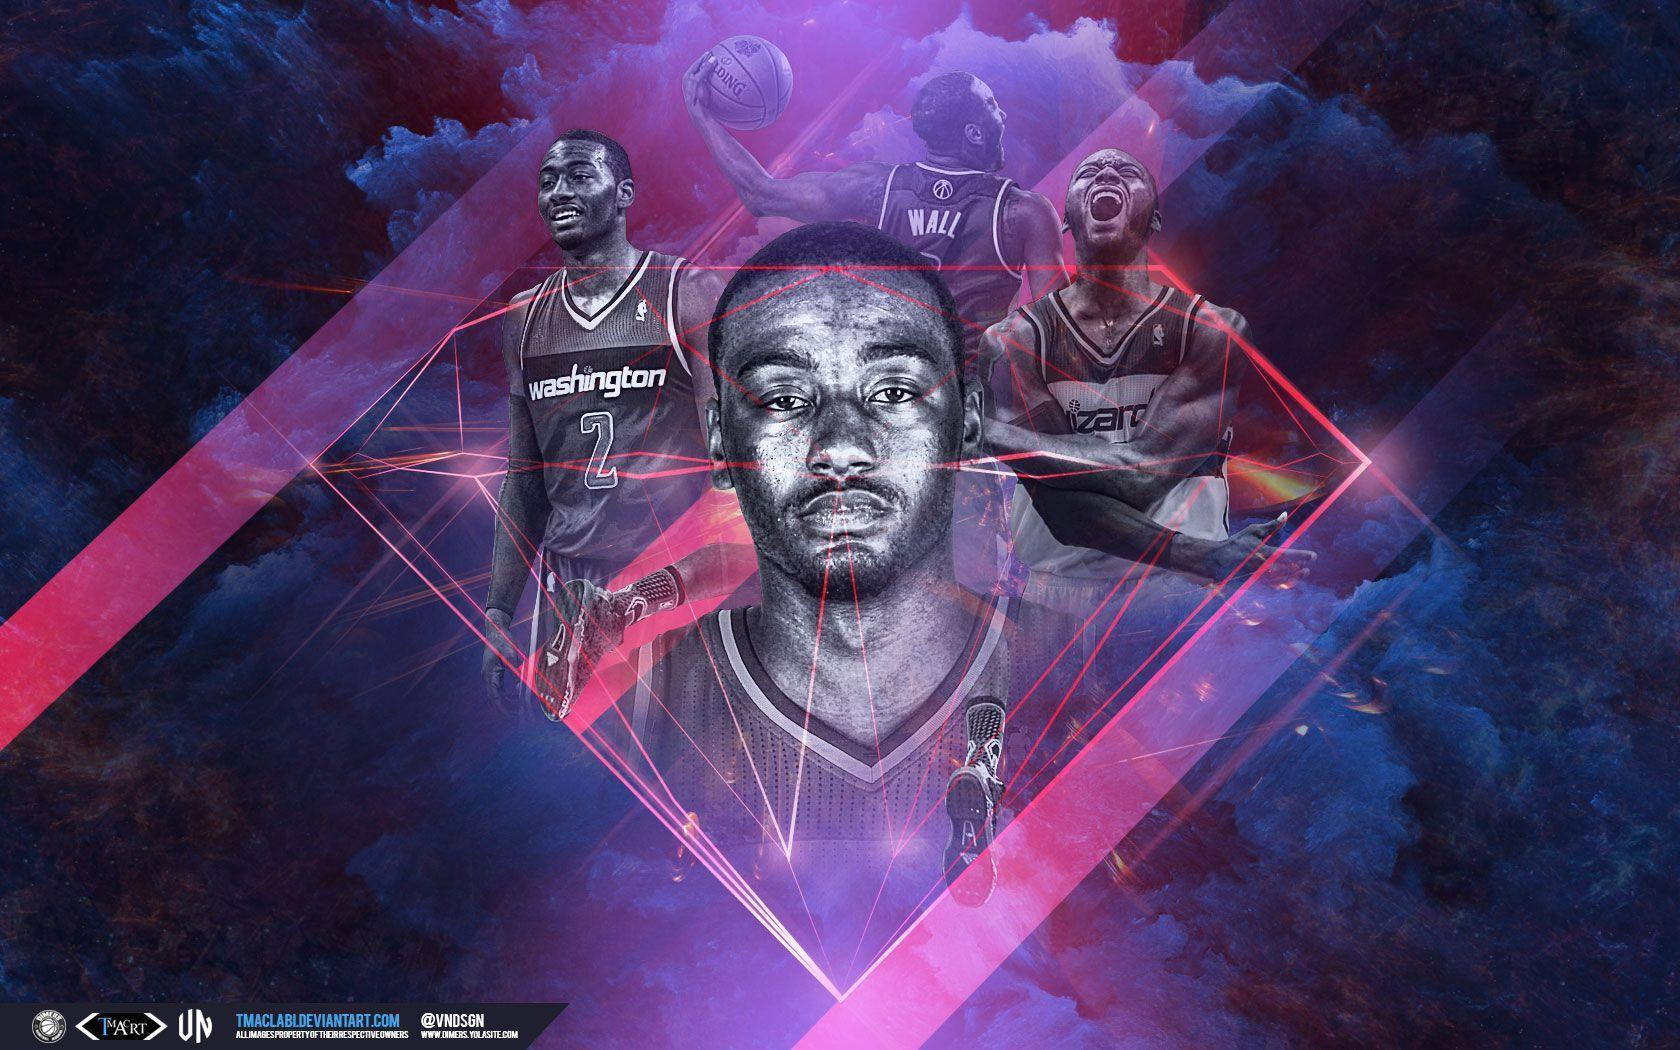 John Wall Wizards Wallpaper | Basketball Wallpapers at ...